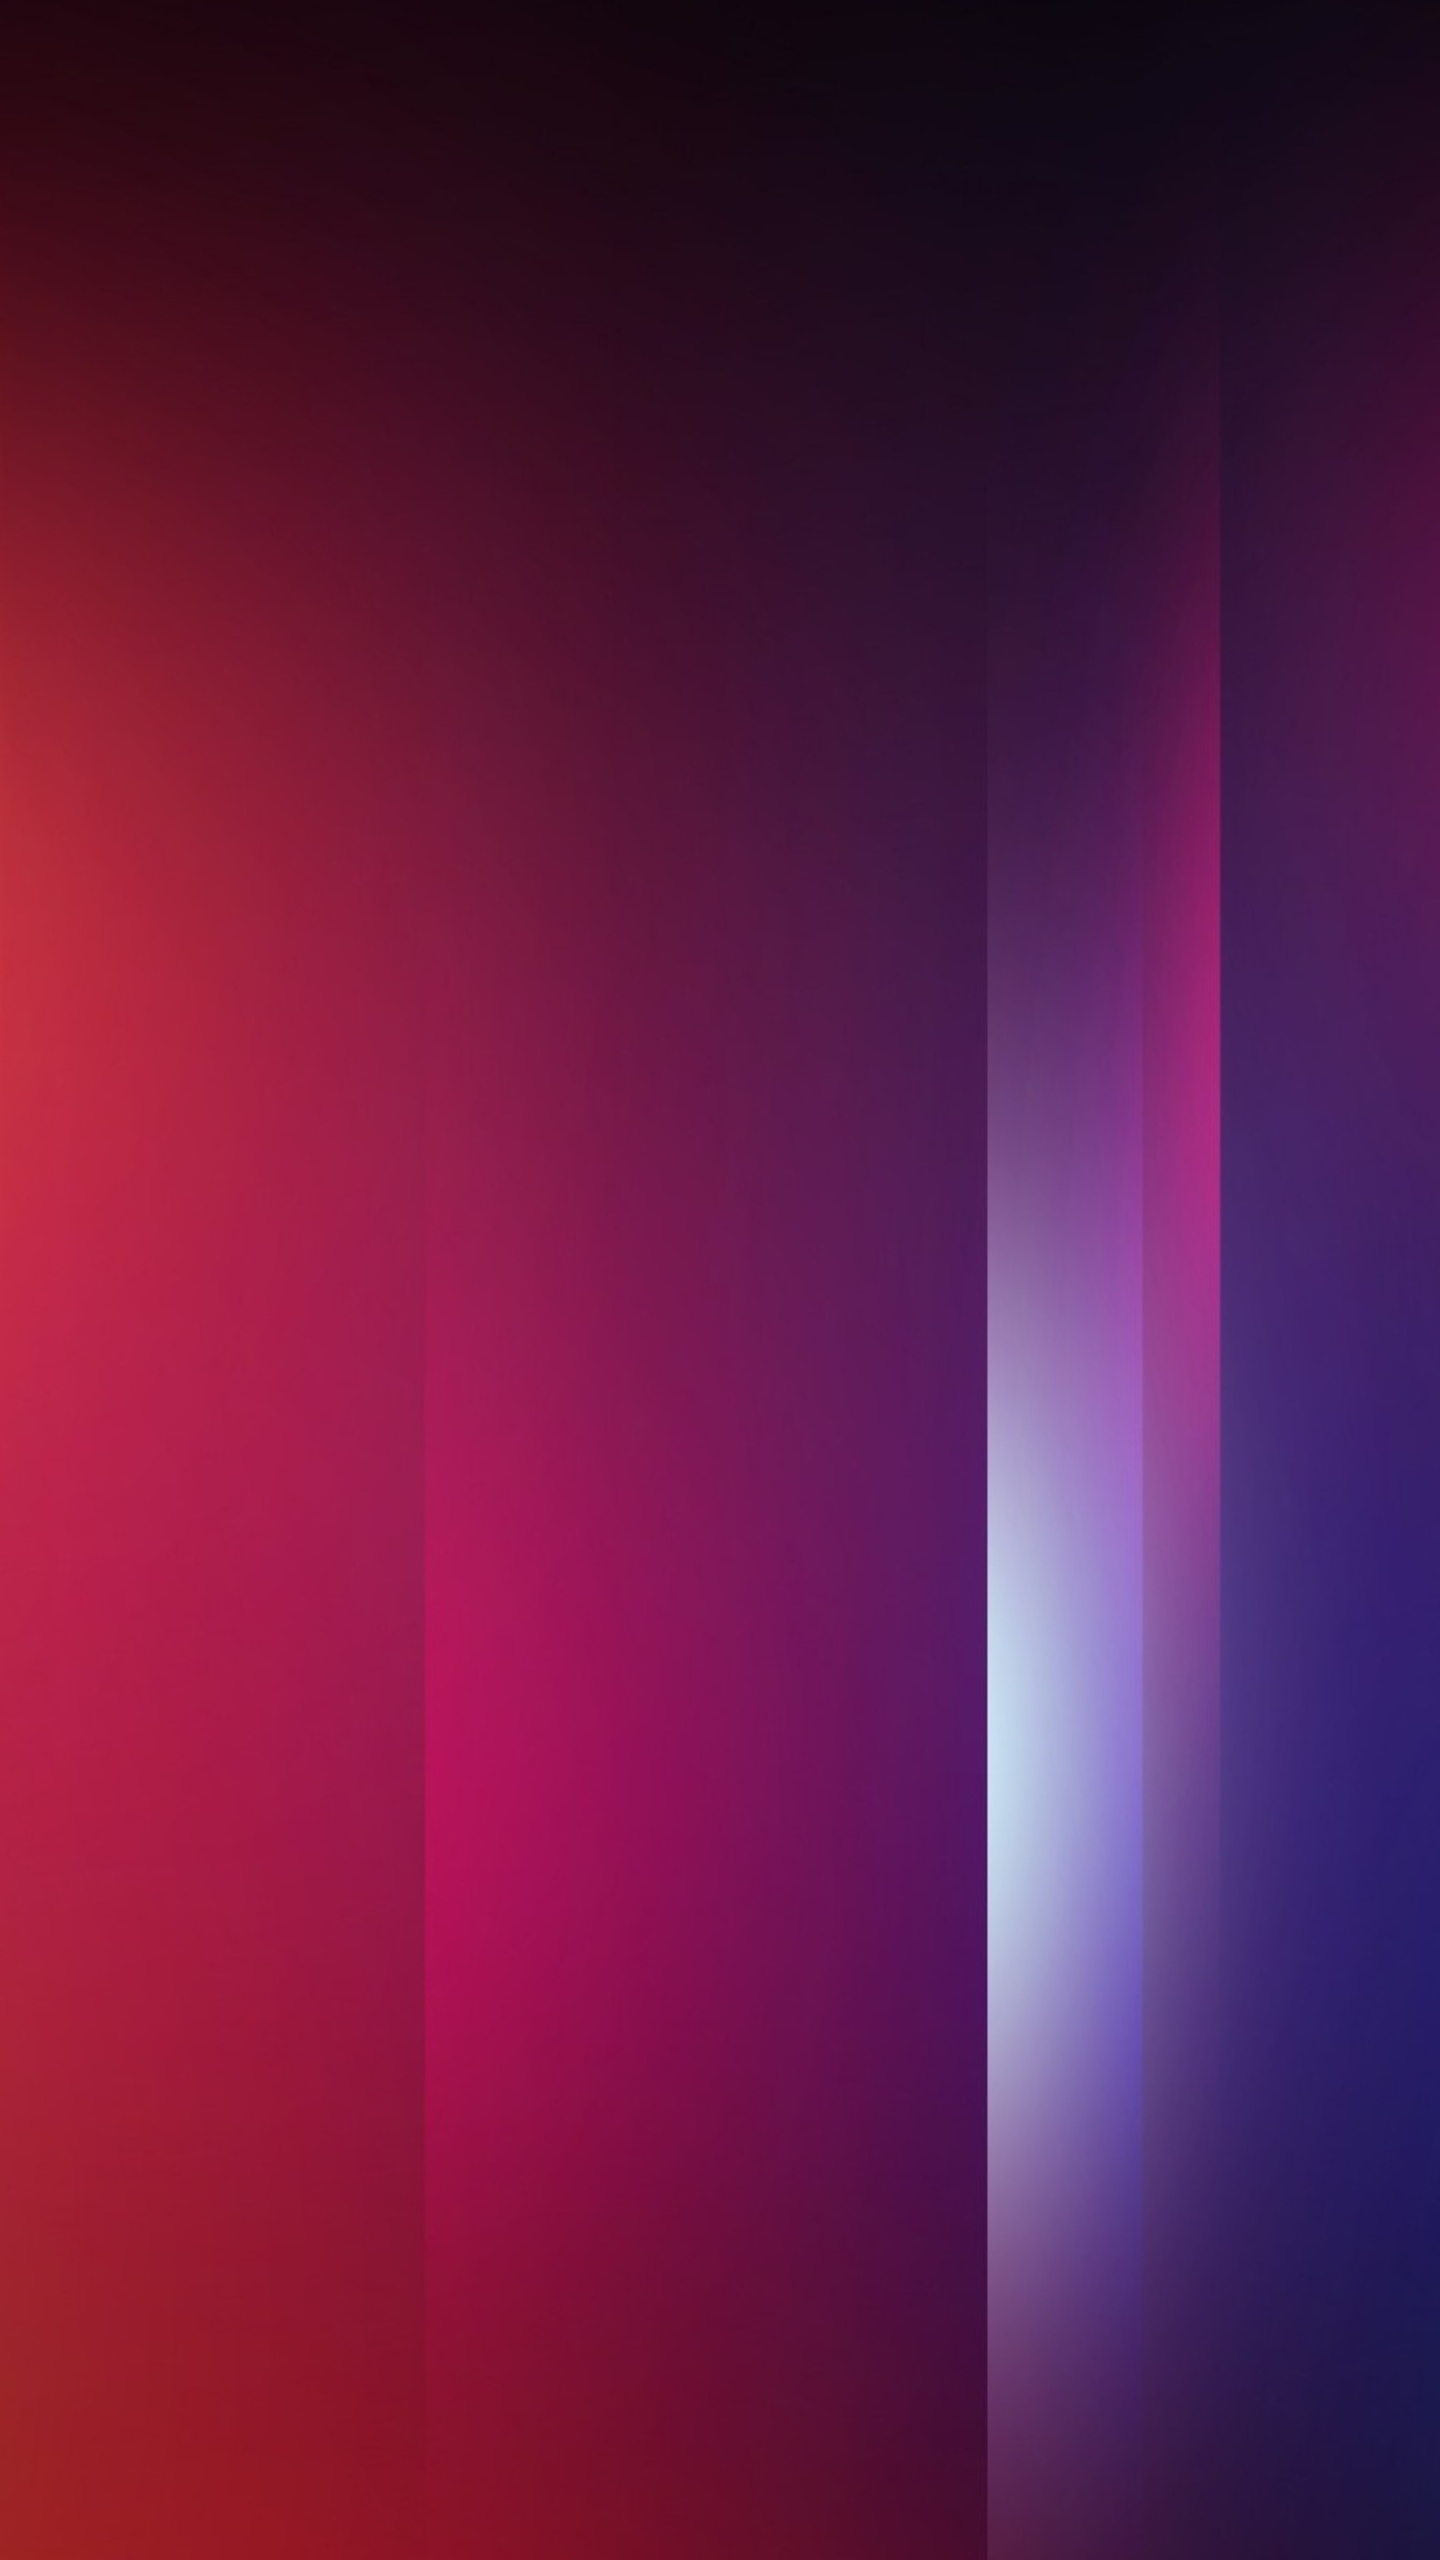 colors-abstract-background-uq.jpg